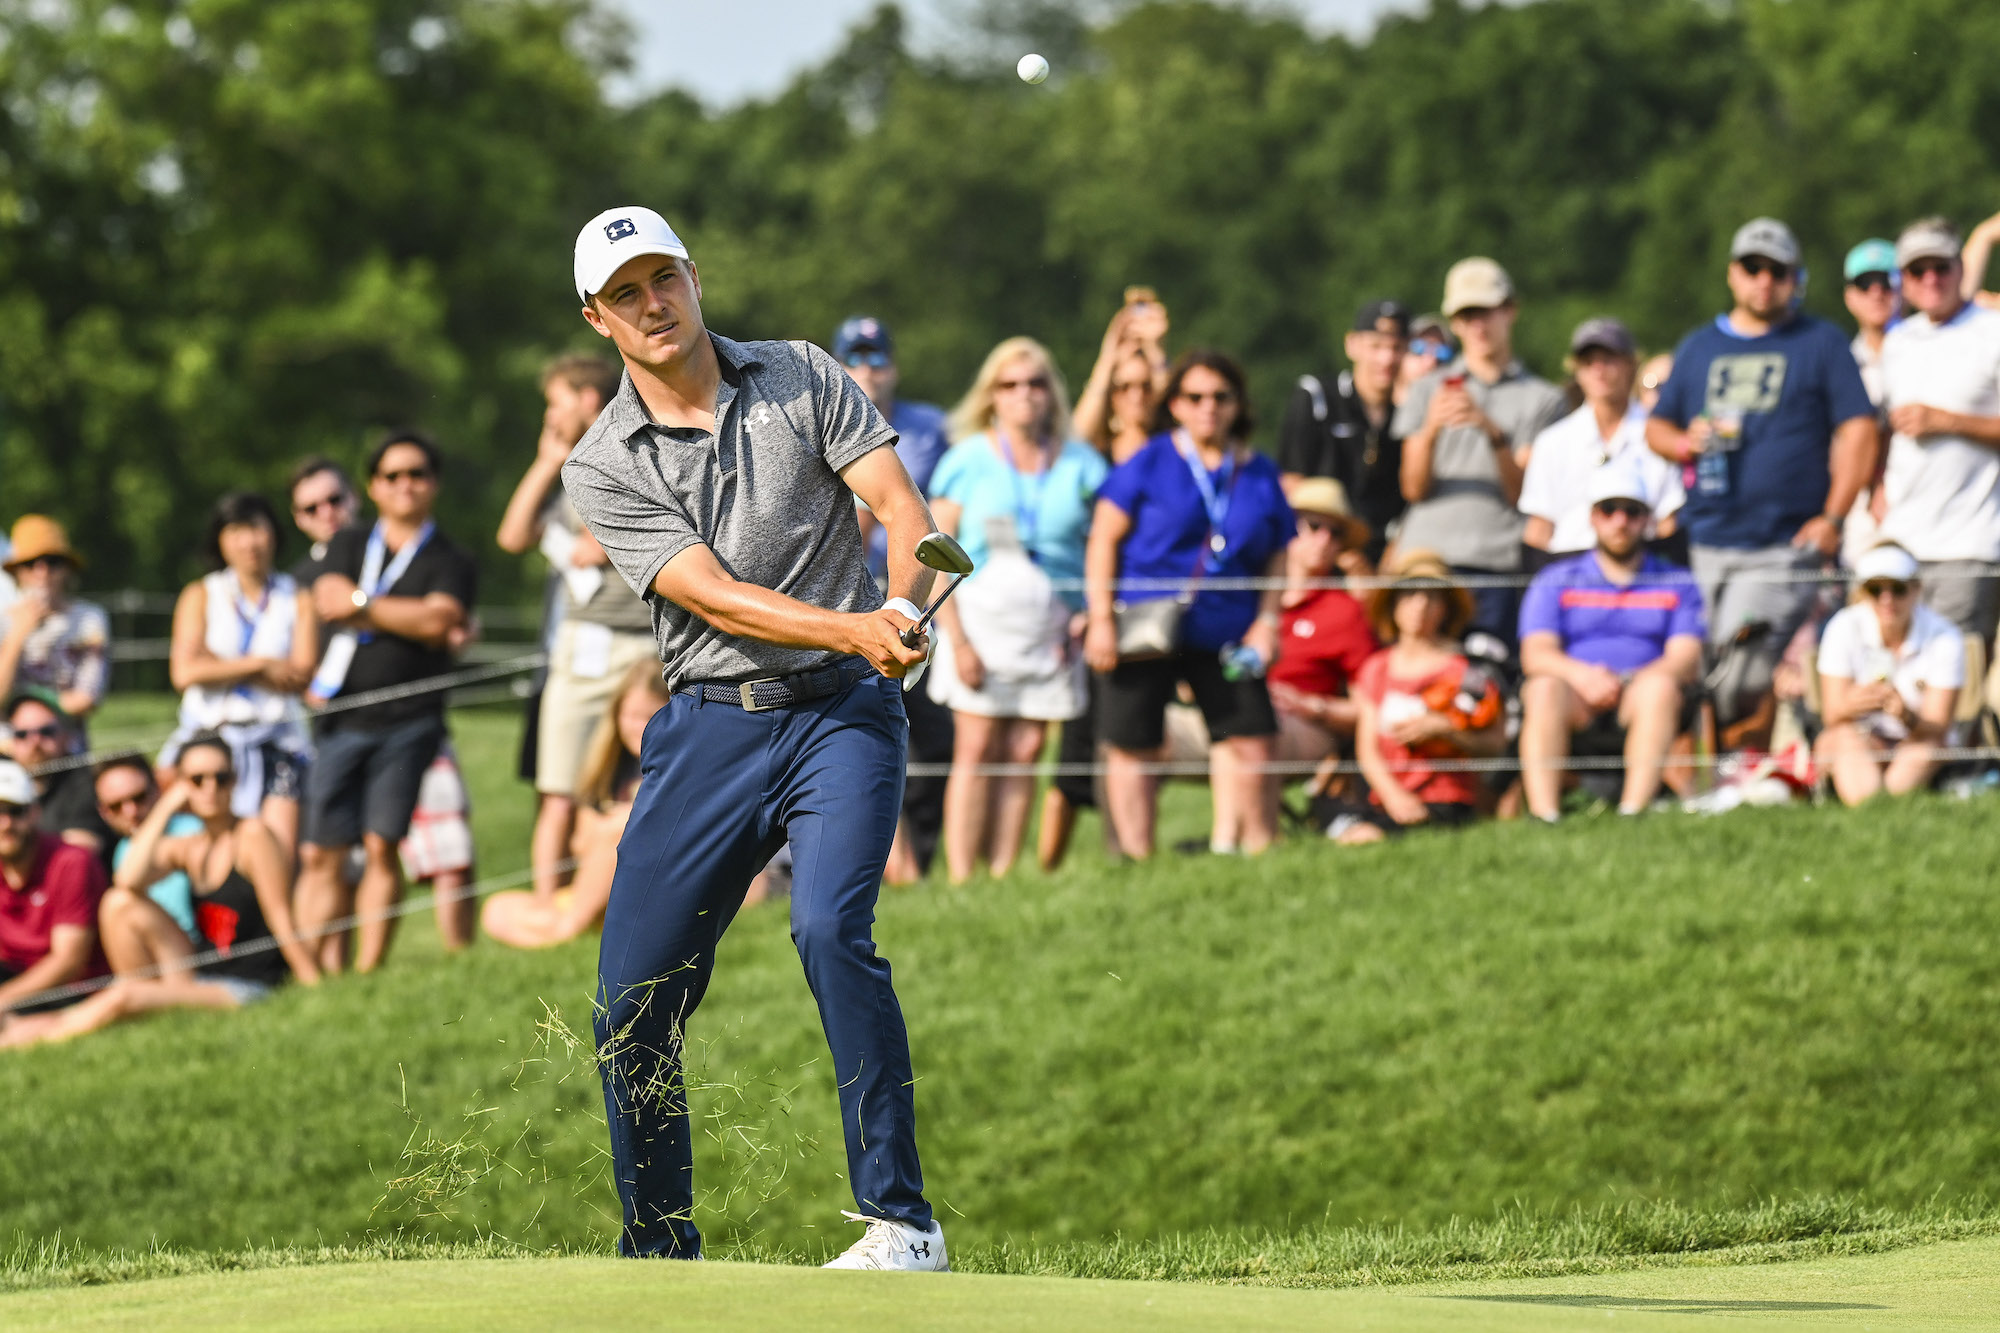 The 2019 Memorial Tournament: Round 3 - Chip Shot on No. 18